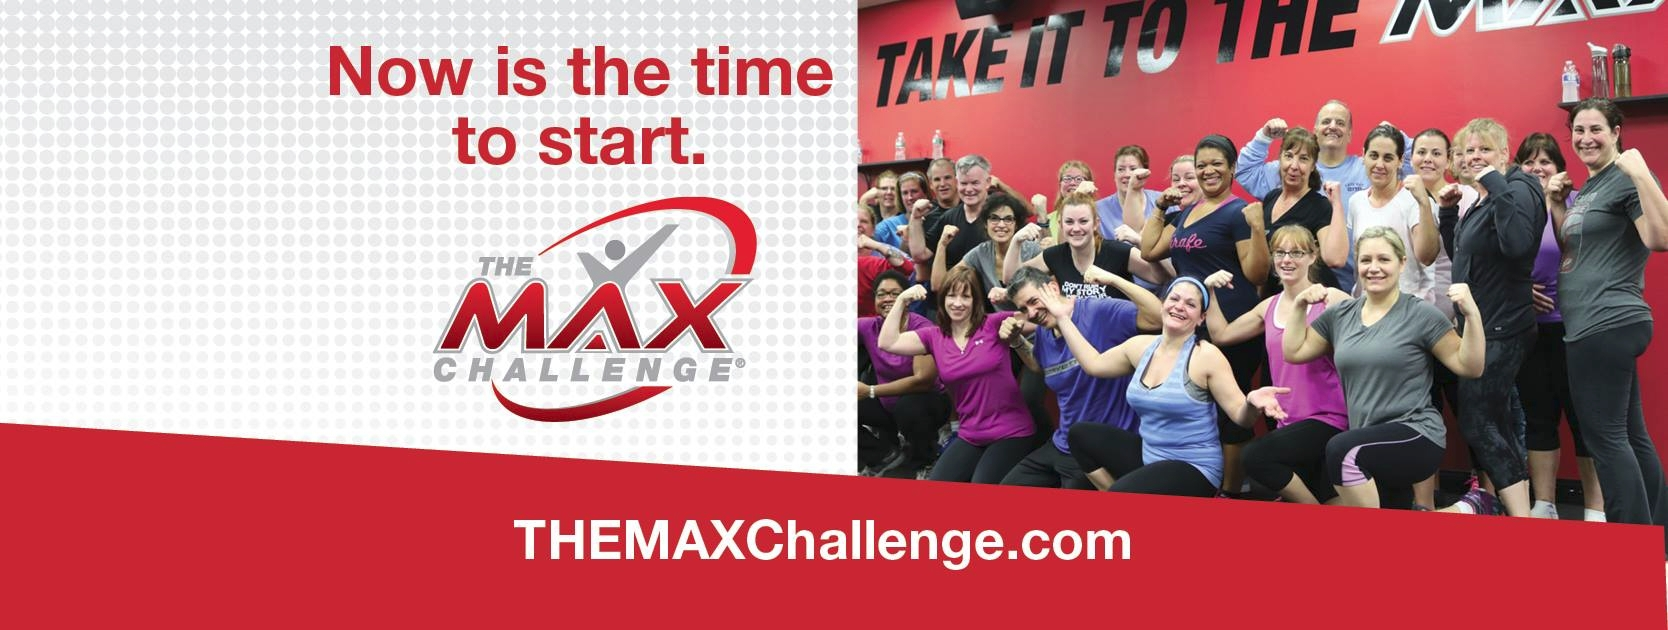 The Max Challenge - Corporate (@themaxchallenge) Cover Image